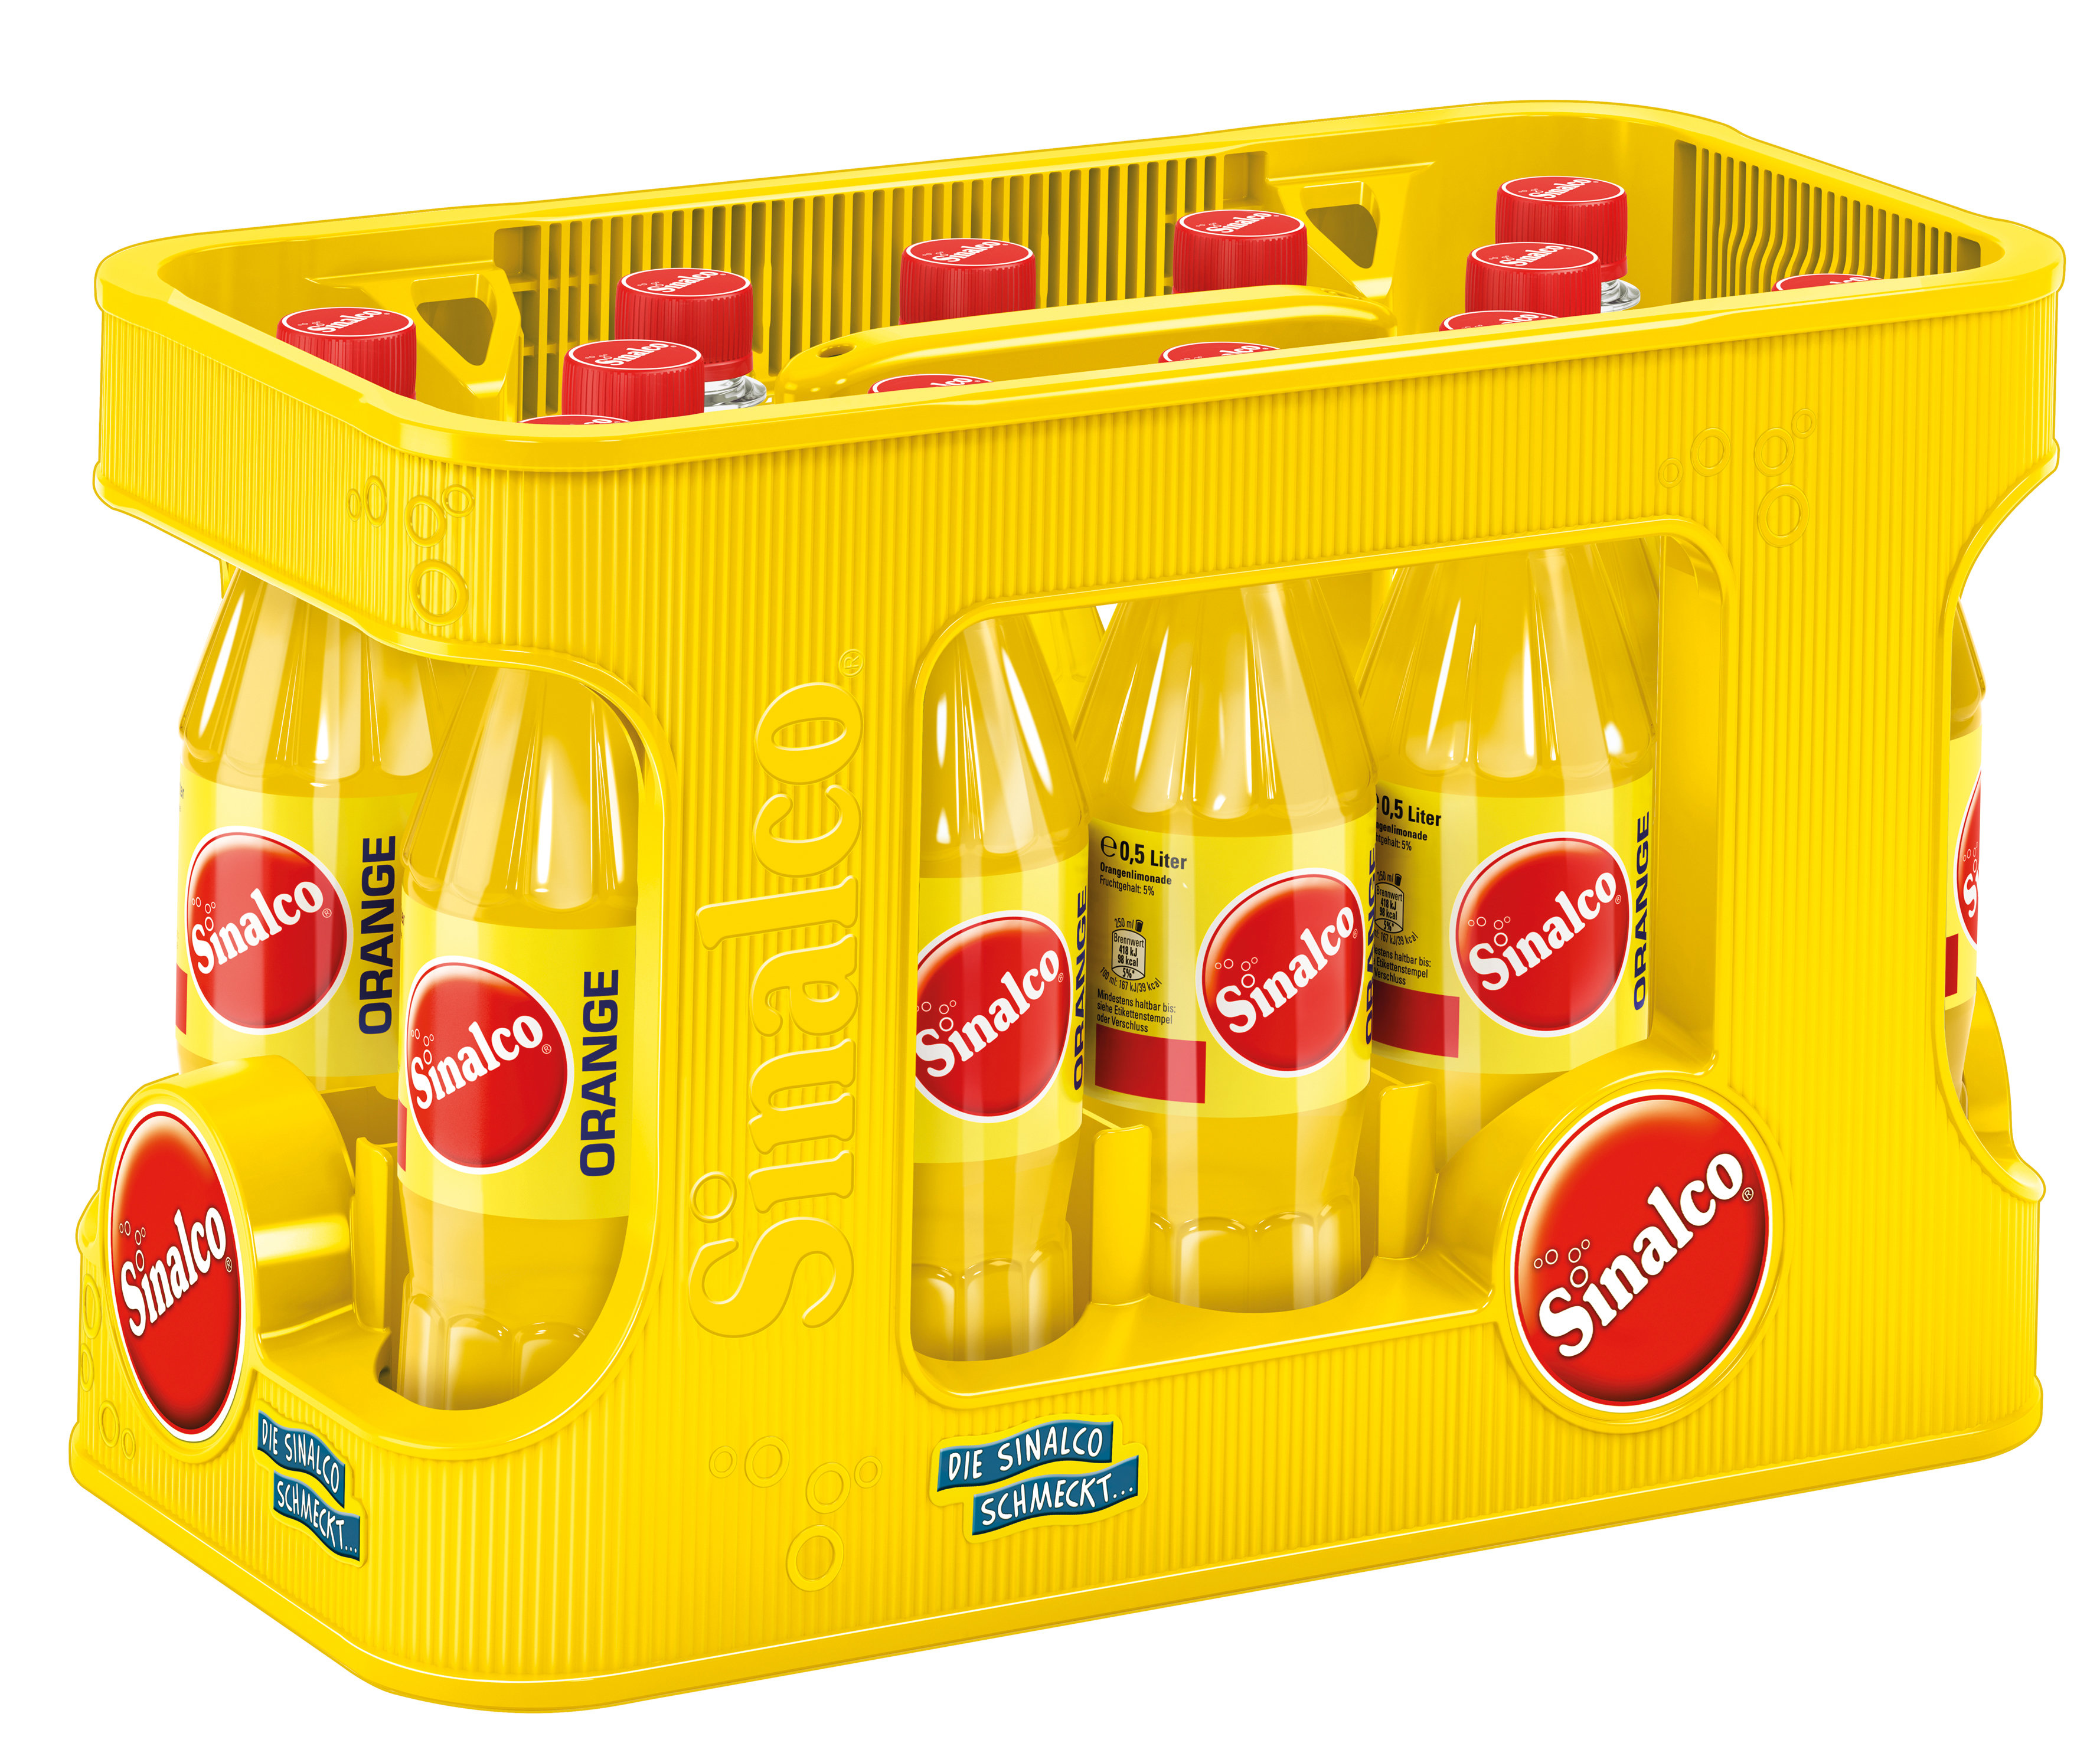 Sinalco Orange Kasten 12 x 0,5 l PET Mehrweg